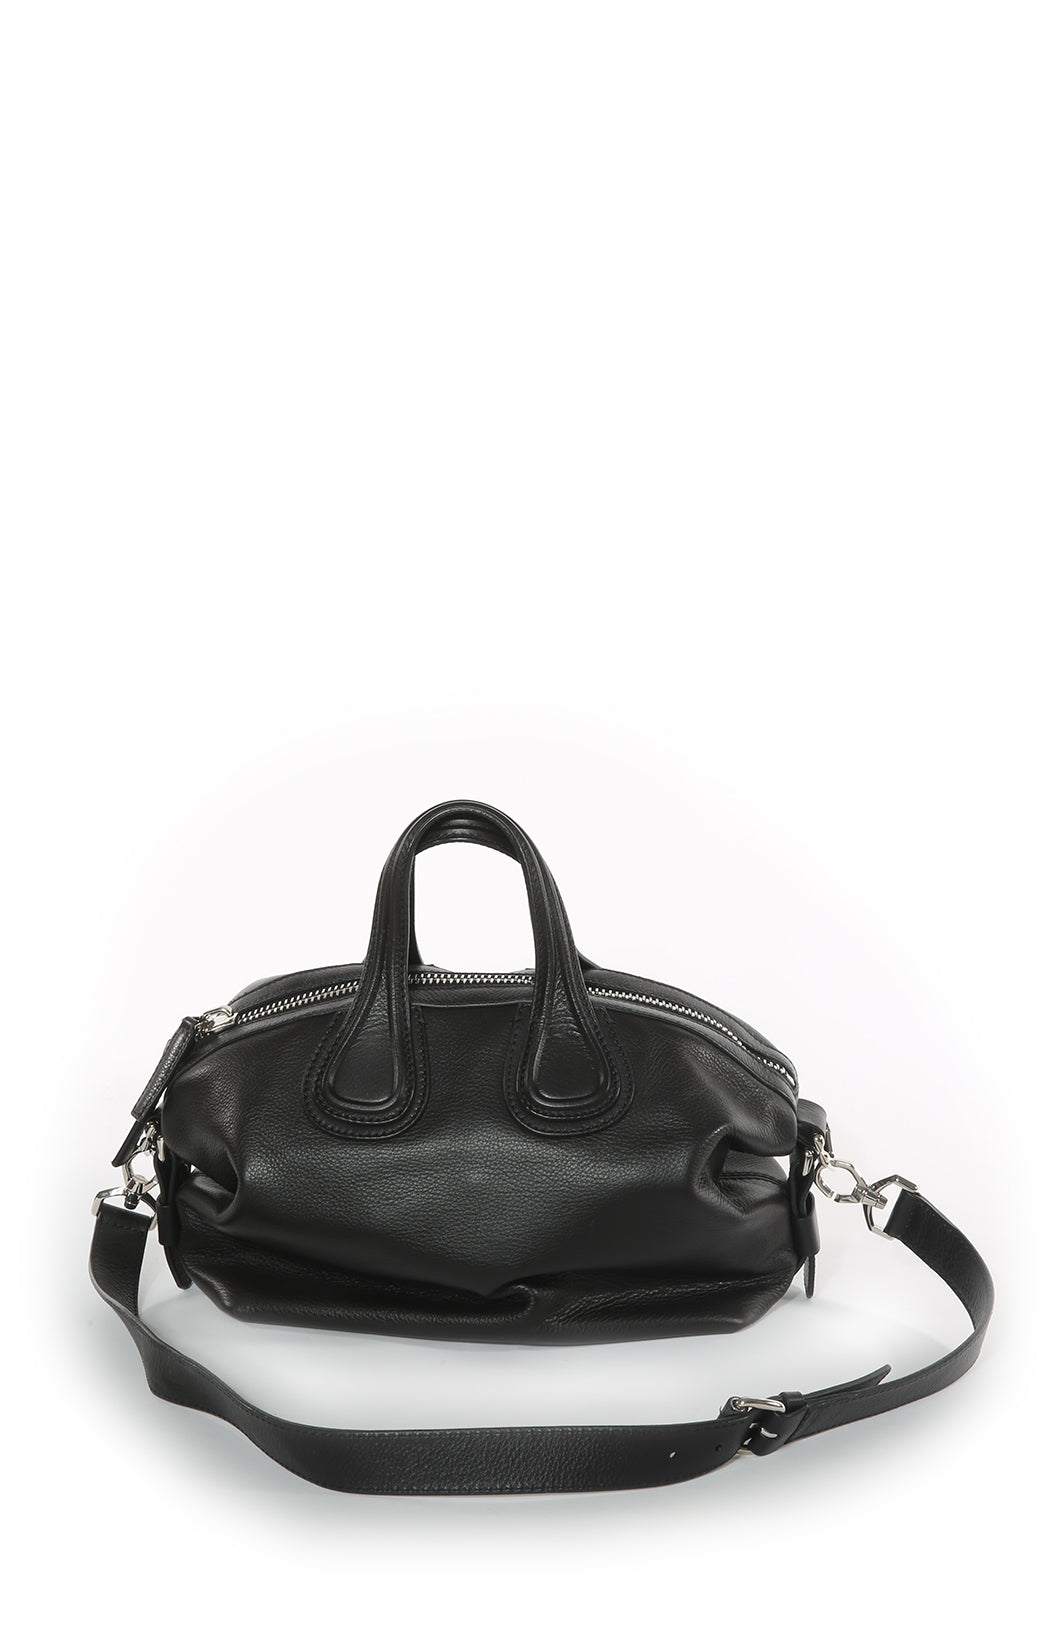 Back view of GIVENCHY Handbag